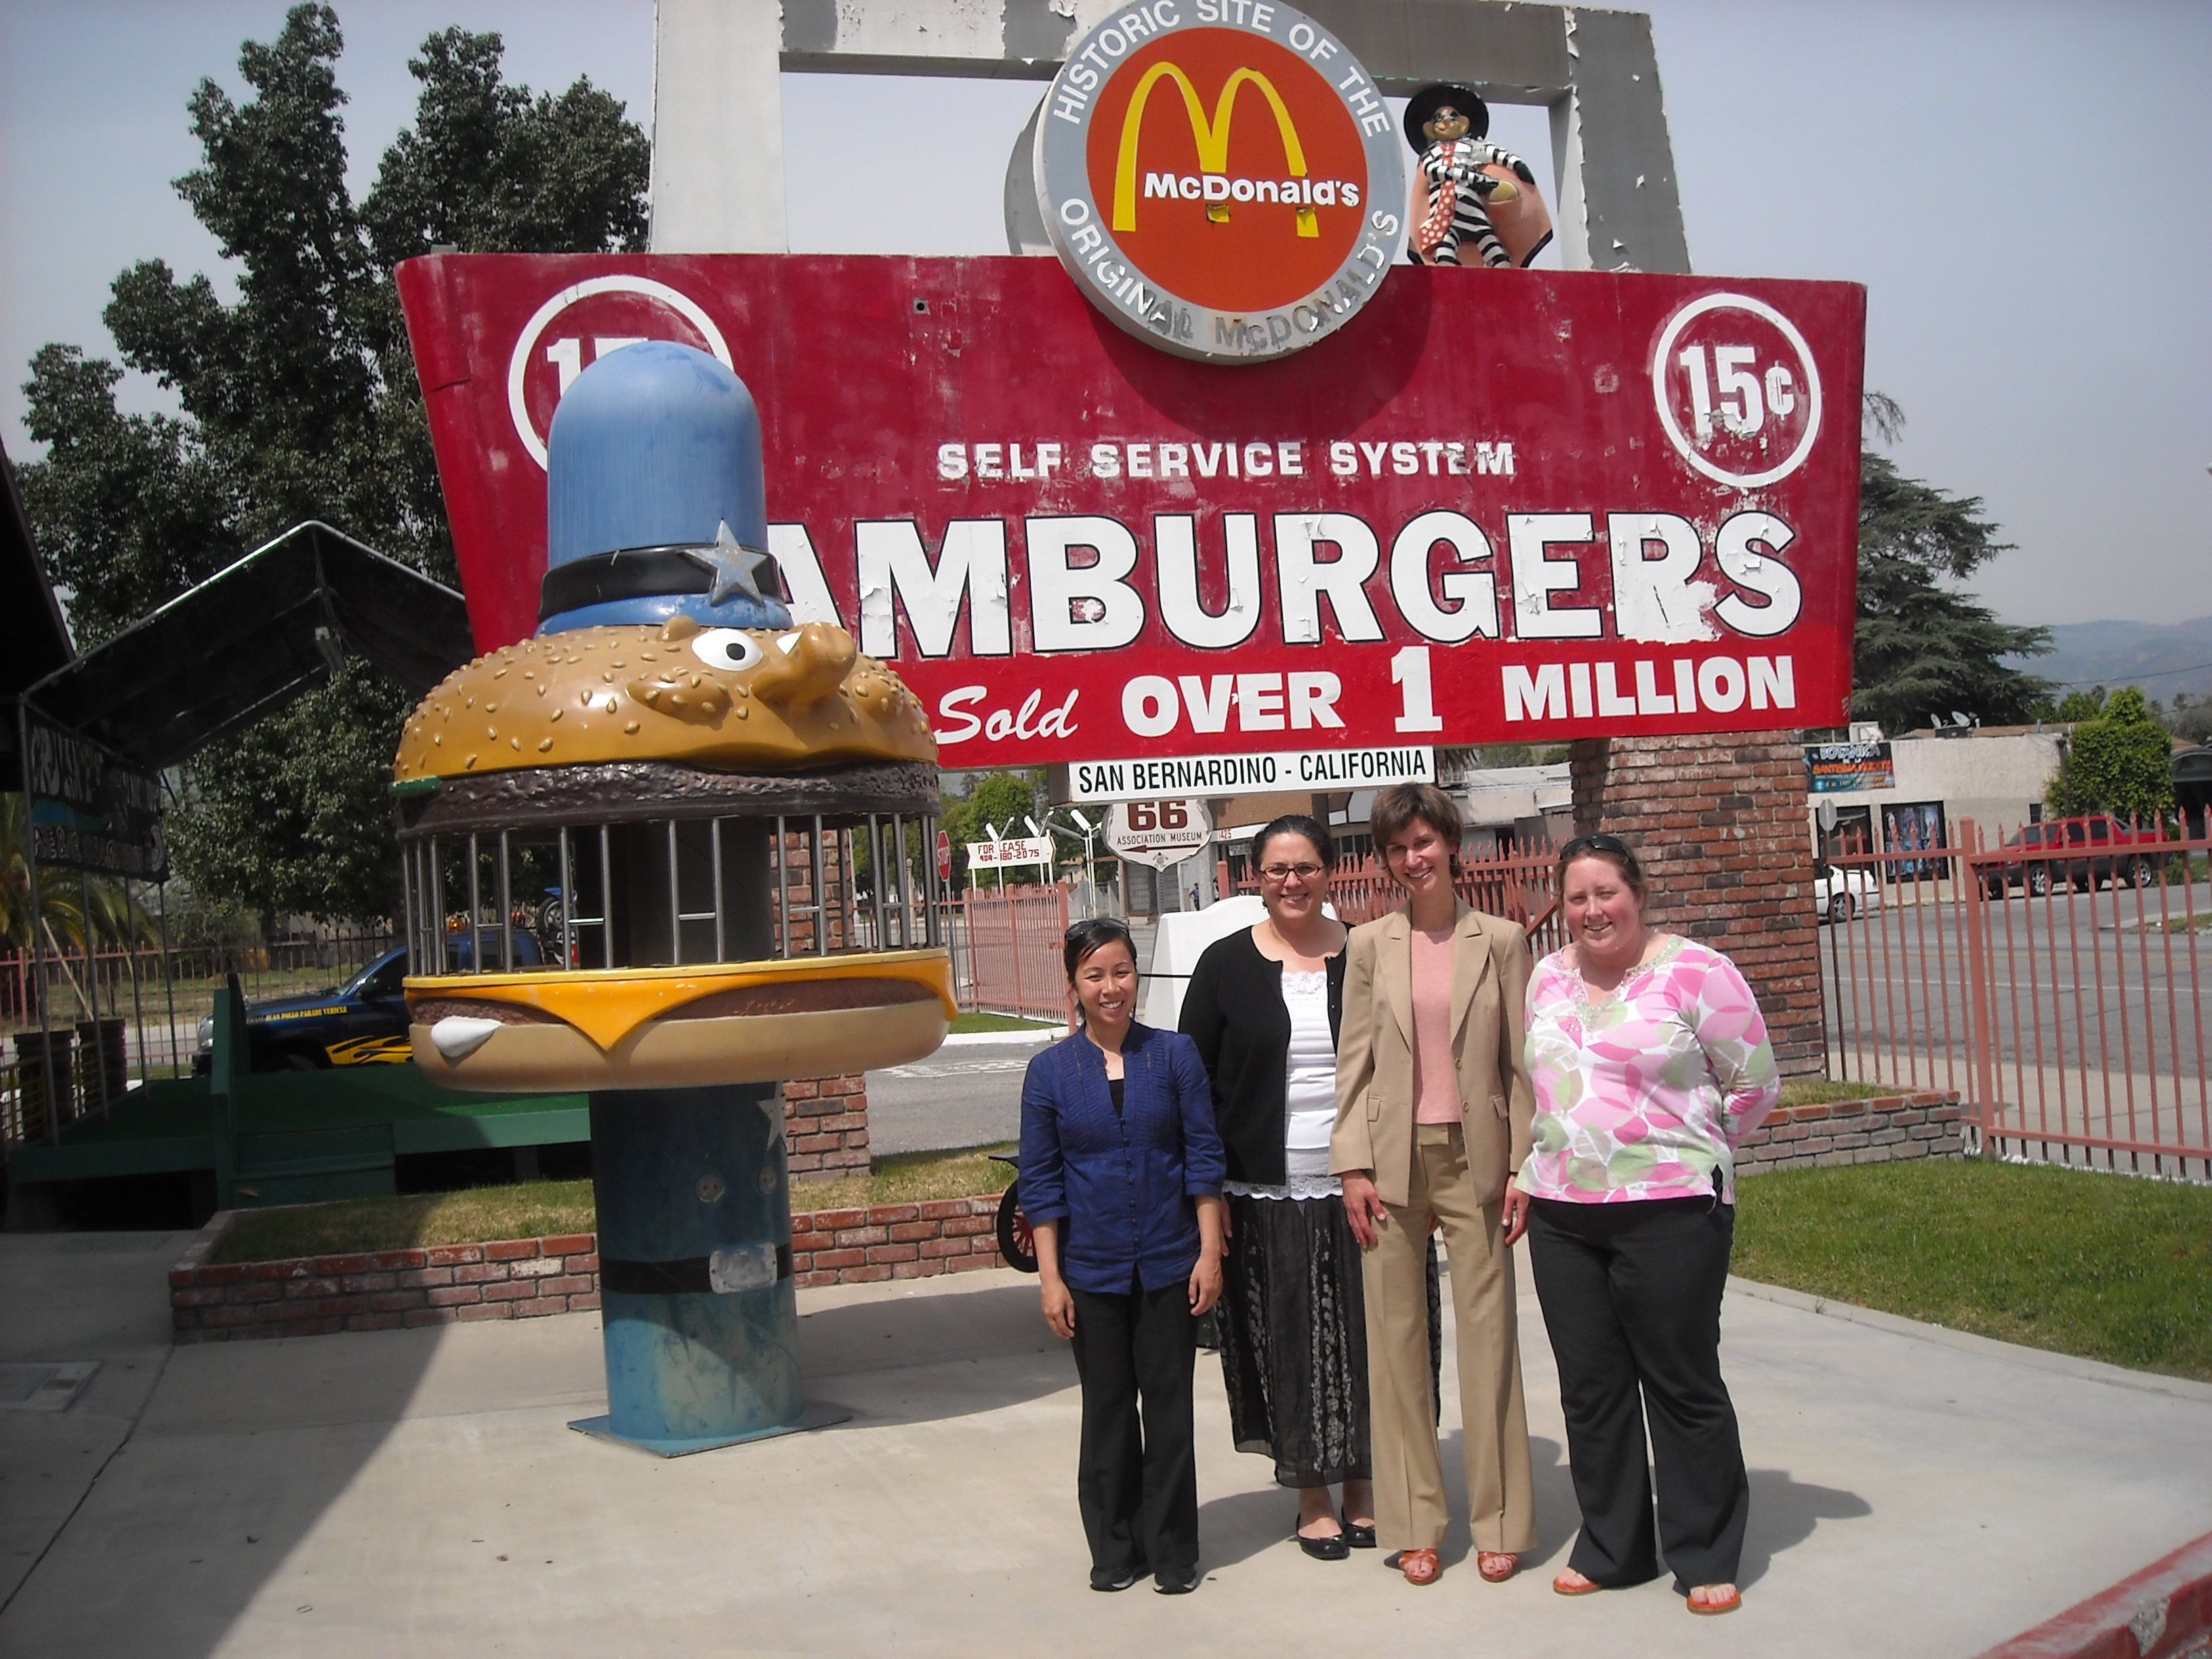 Dr. Varzally poses in front of McDonald's location for oral history project